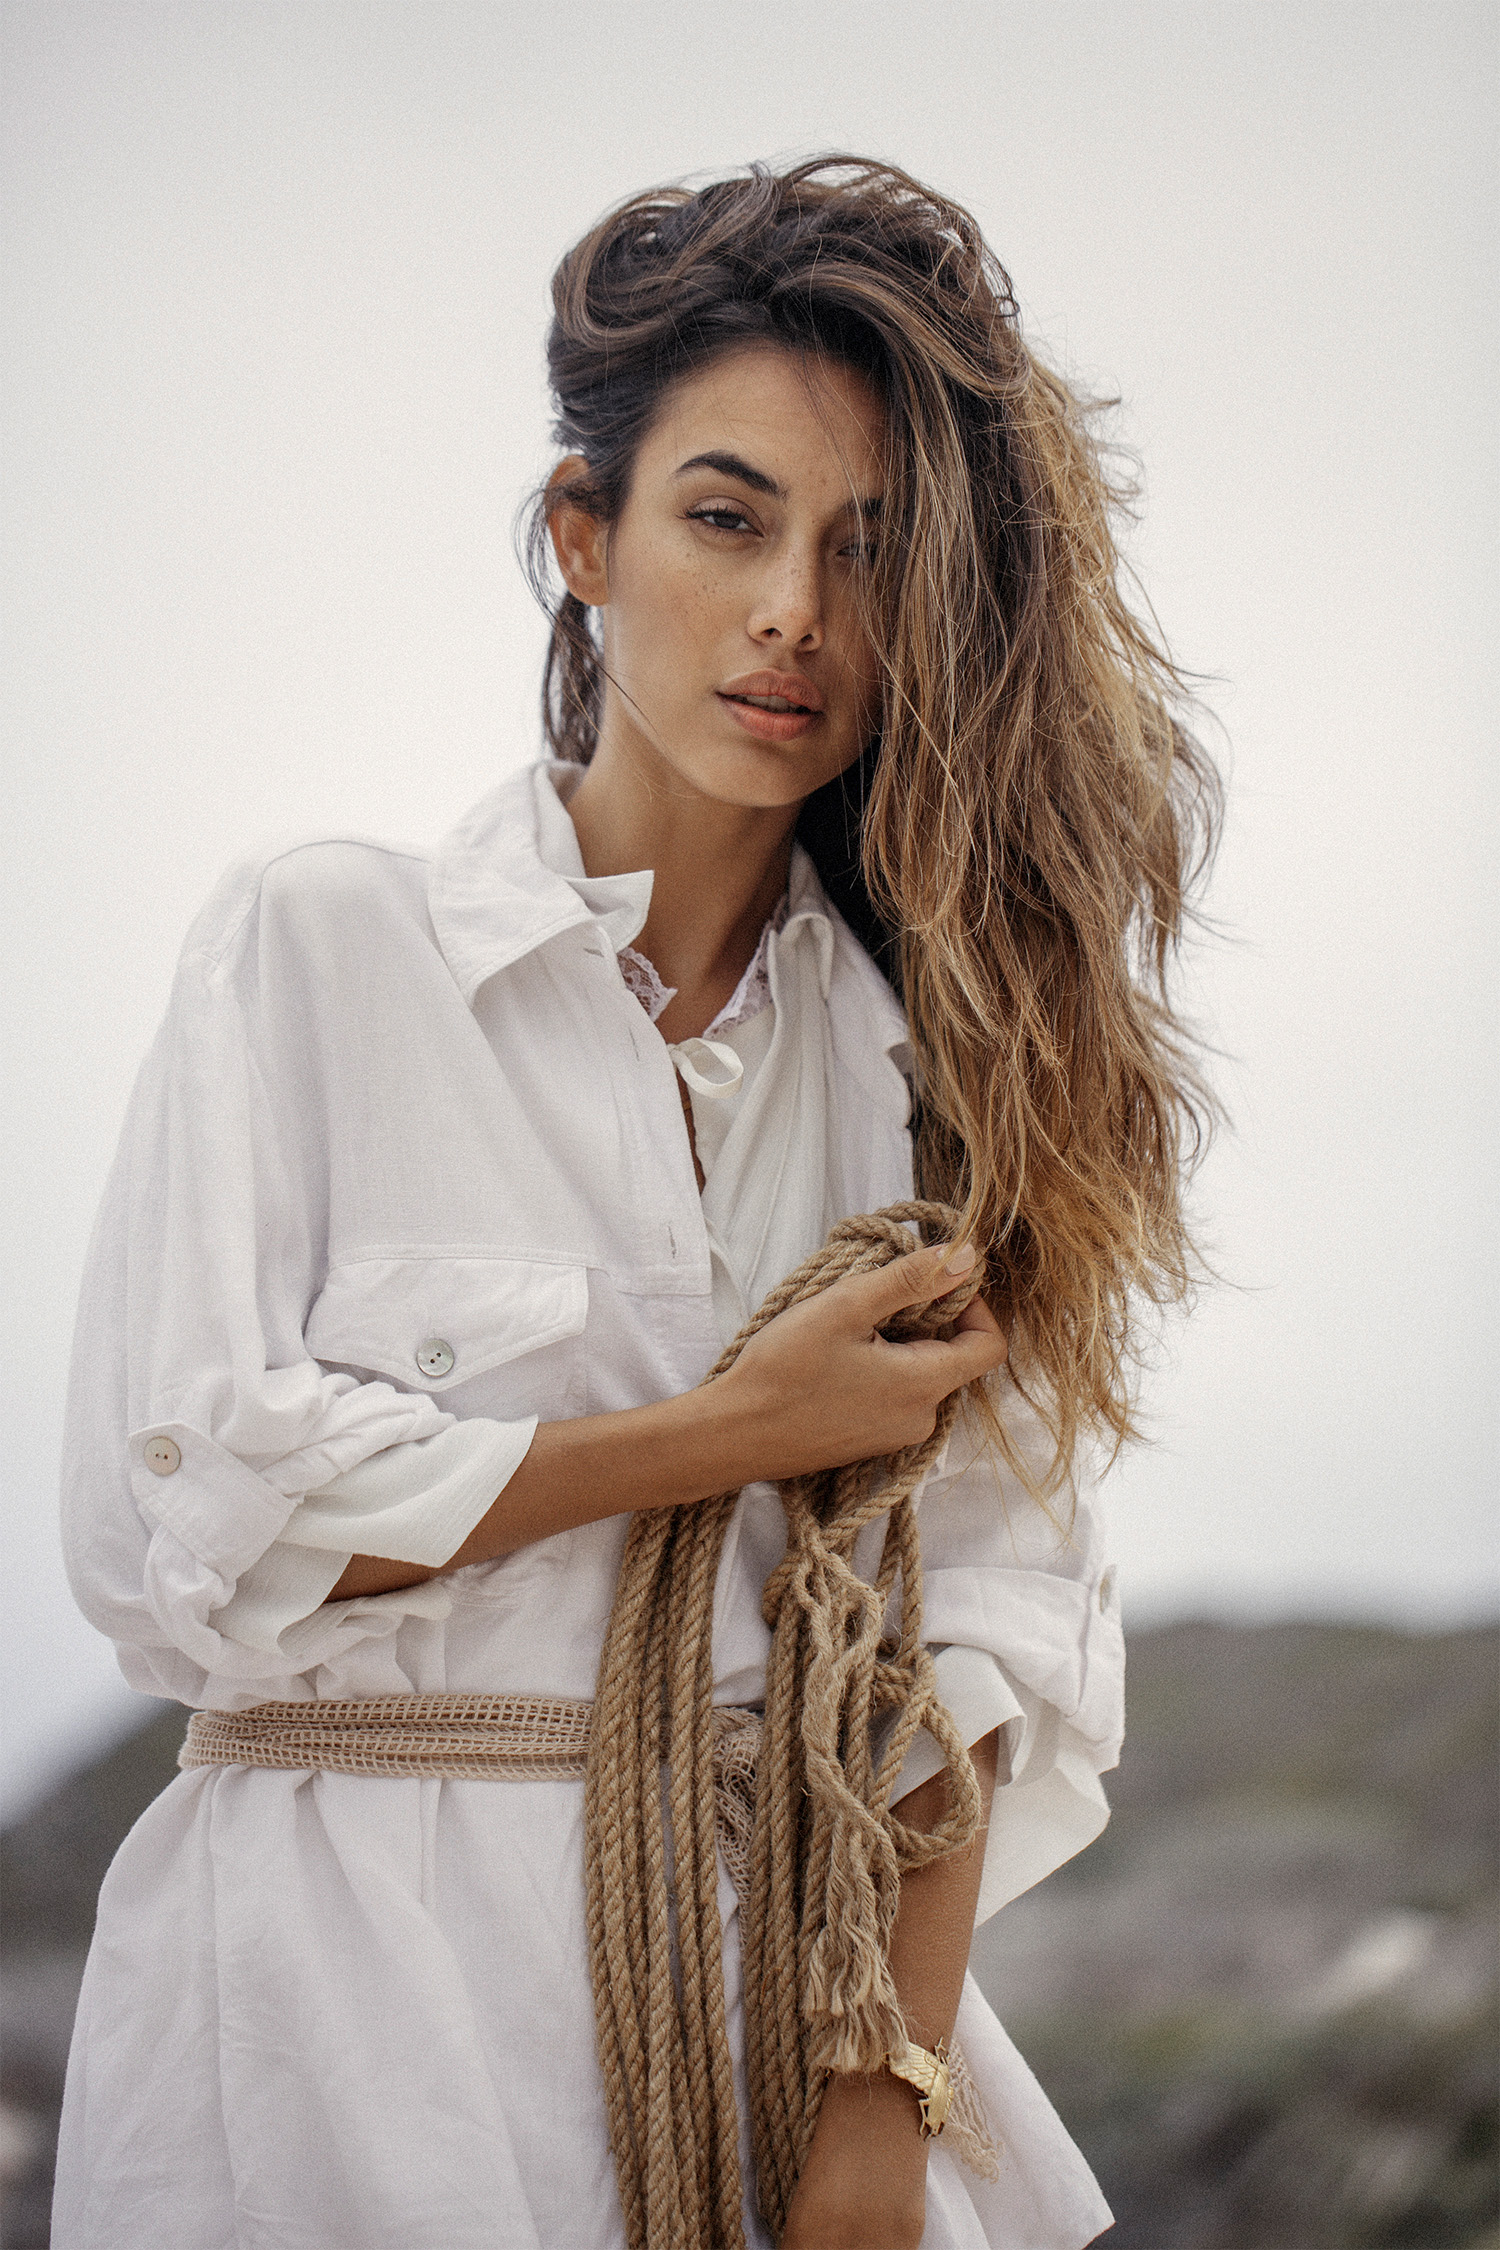 White silk dress with lace collar, Noël of Me by Demet Karatas; white camisole, Kokomo at Mungo & Jemima; white shirt, vintage at Nevernew; scarf (worn as a belt), stylist's own; necklace and bracelet, Sarah Mulder Jewelry